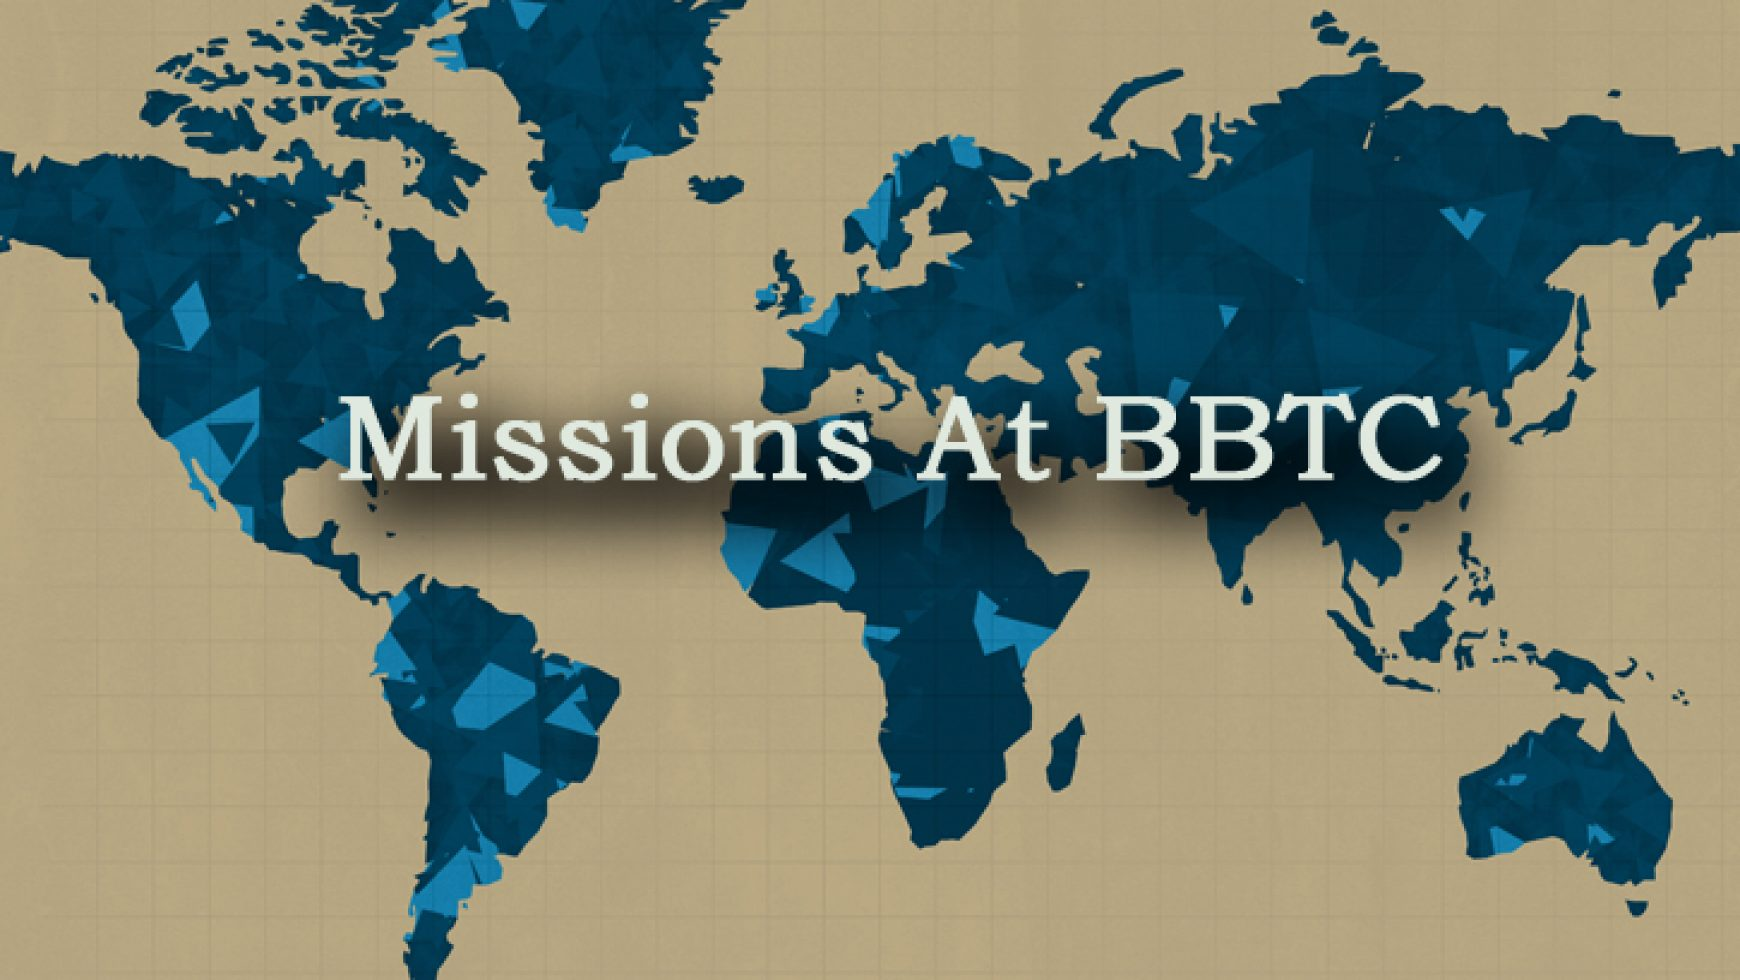 BBTC Missions and Outreach